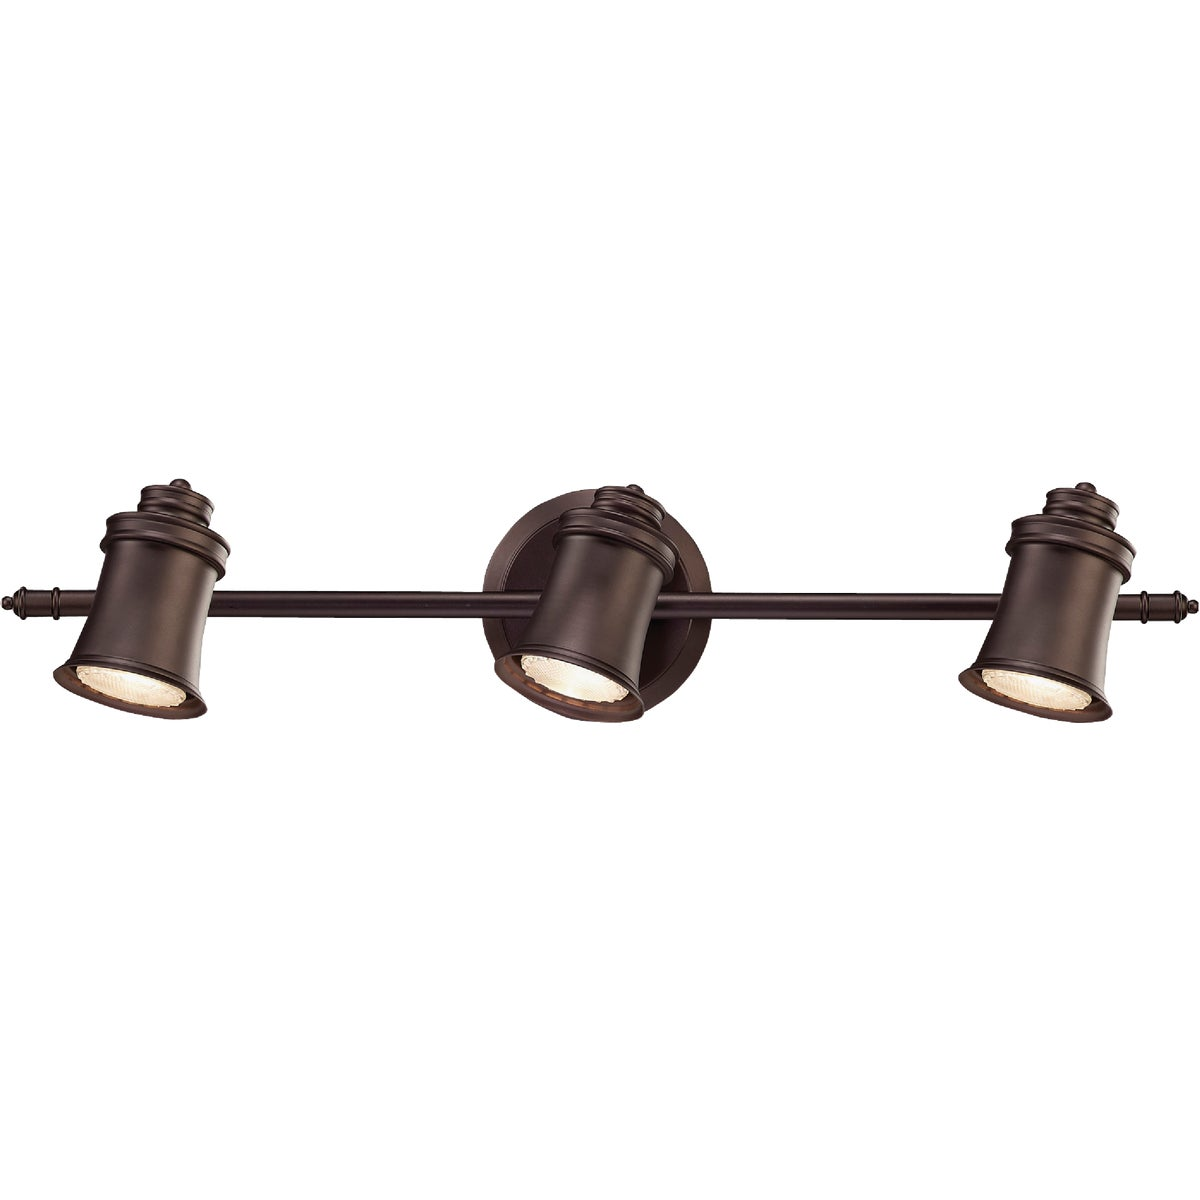 TAYLOR ORB TRACK 3-LIGHT - IT299A03ORB10 by Canarm Gs